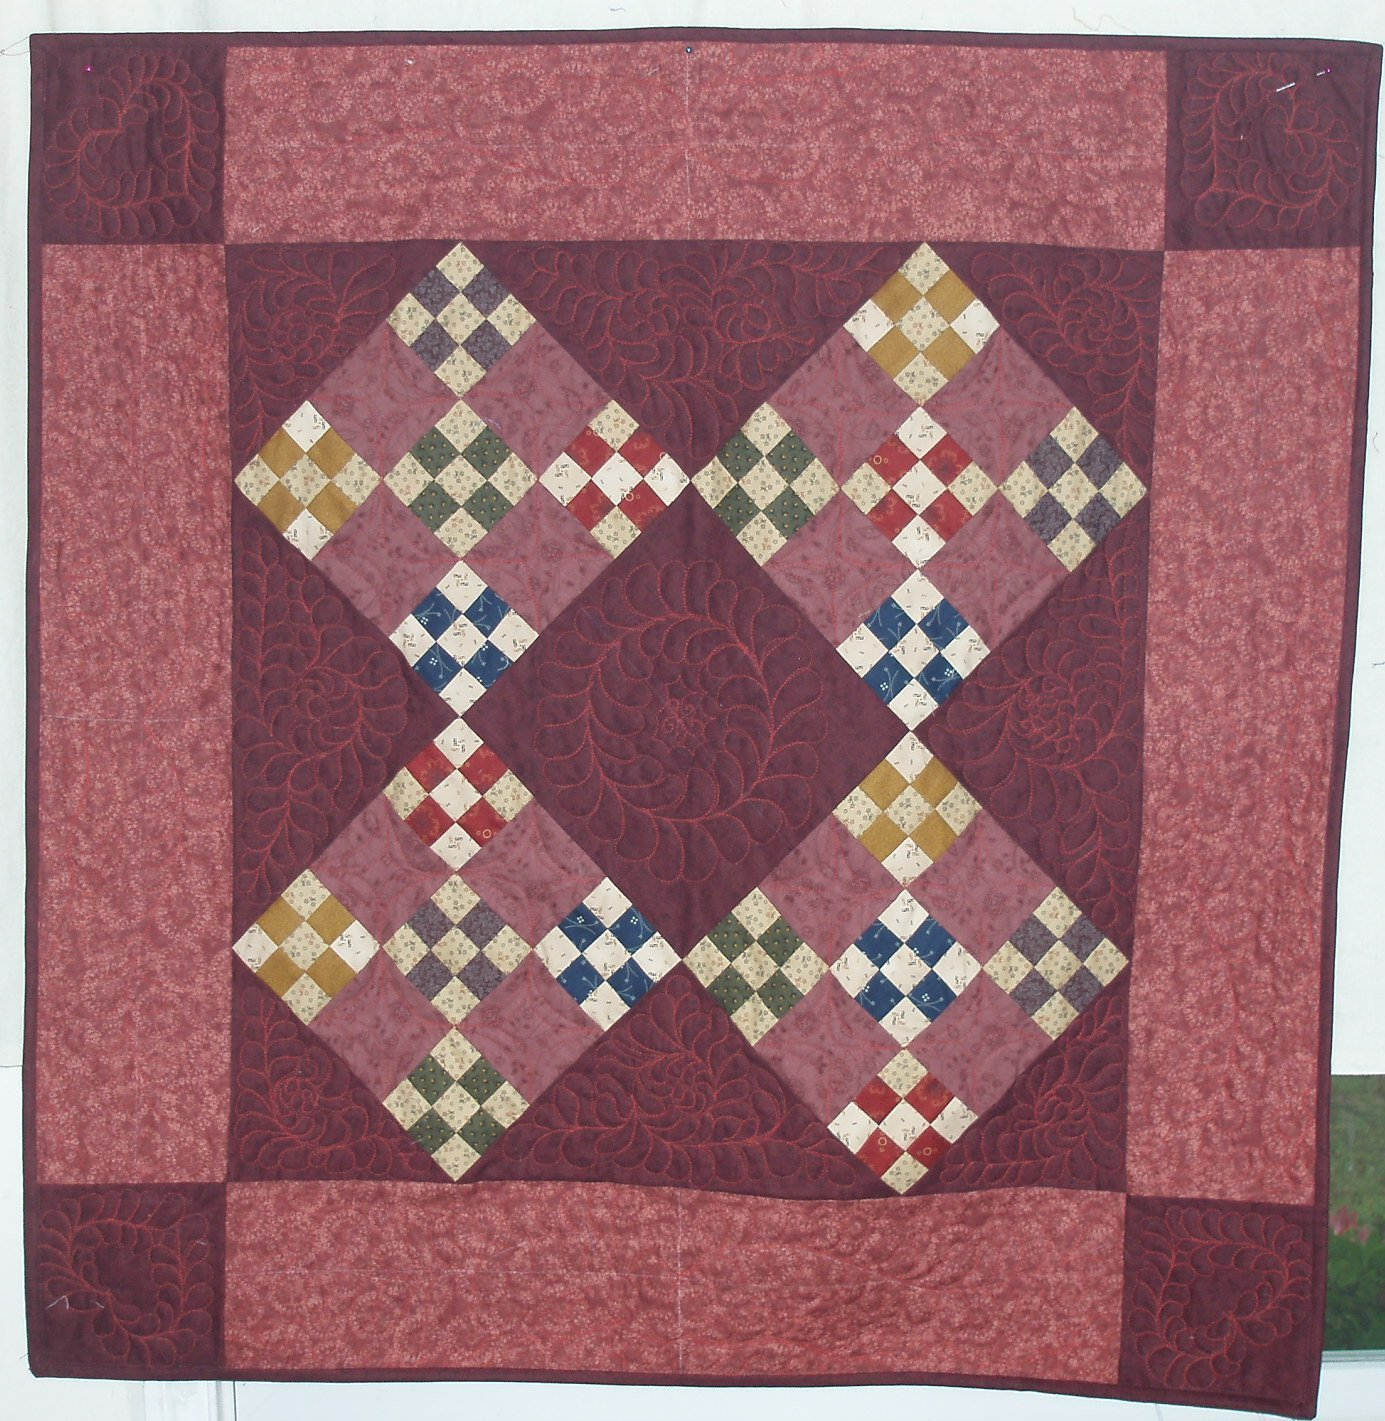 Image of Amish Double 9-Patch Wall Hanging Quilt, Wall Quilts, Amish Quilts, Amish Style Quilts, Small Quilts Home and Kitchen